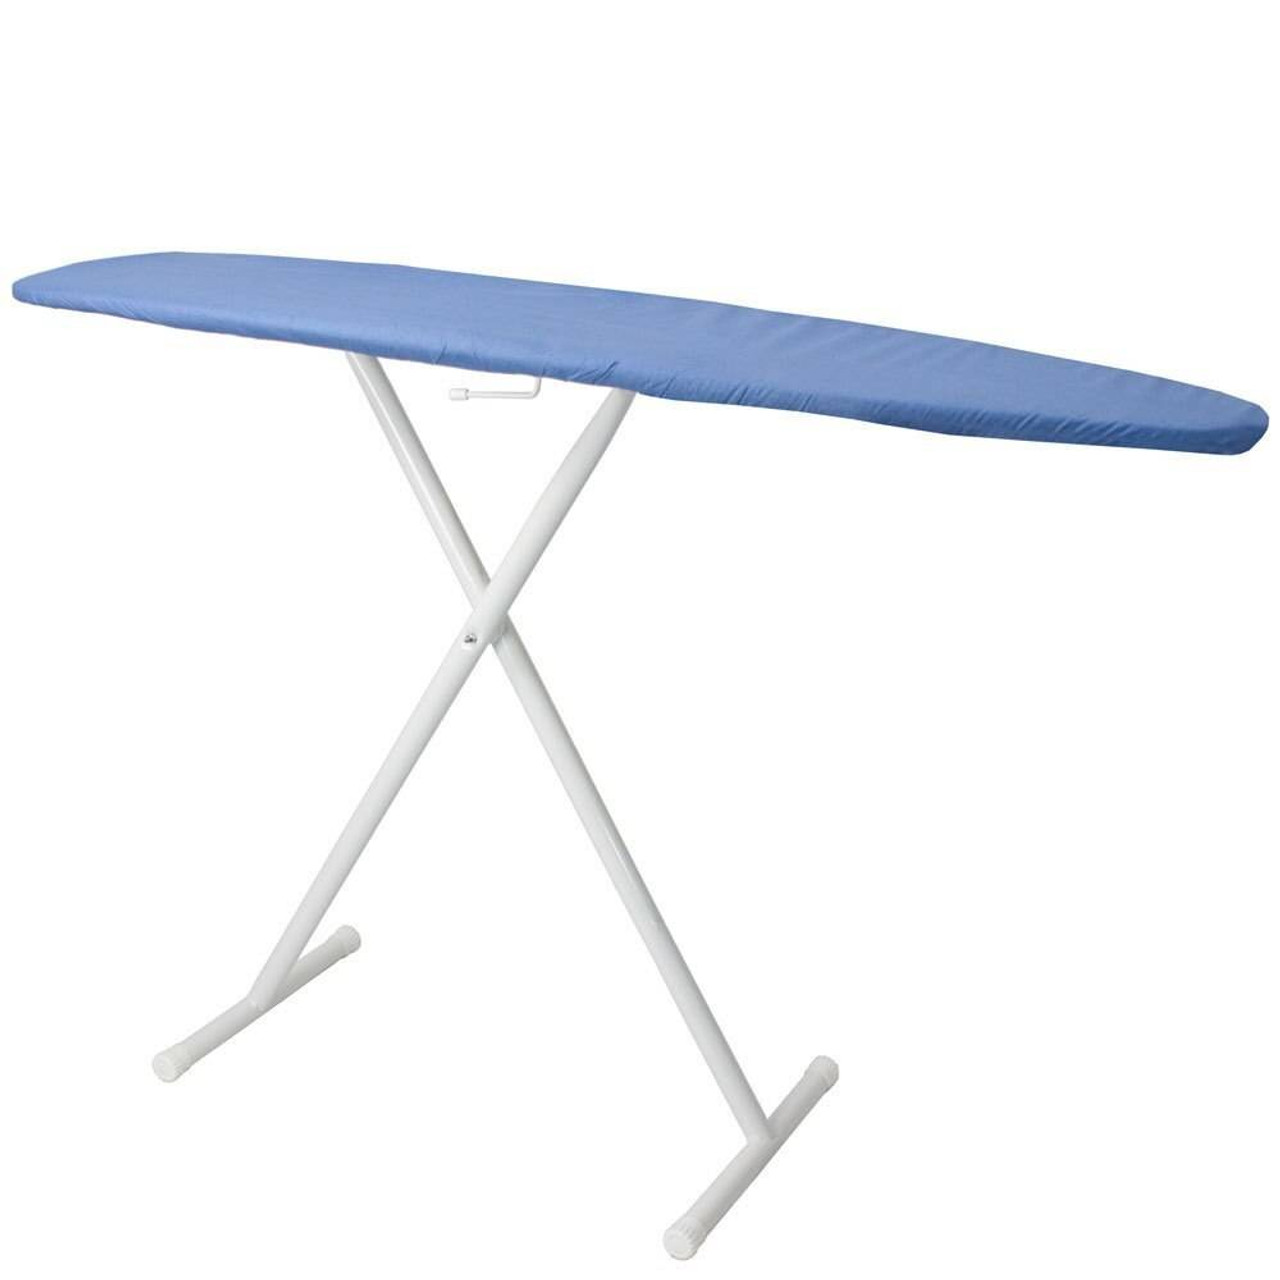 HOSPITALITY 1 SOURCE HOSPITALITY 1 SOURCE or BASIC IRONING BOARD or BLUE COVER or 53LX13W or POWDER COAT WHITE LEGS FINISH or 4 PER CASE